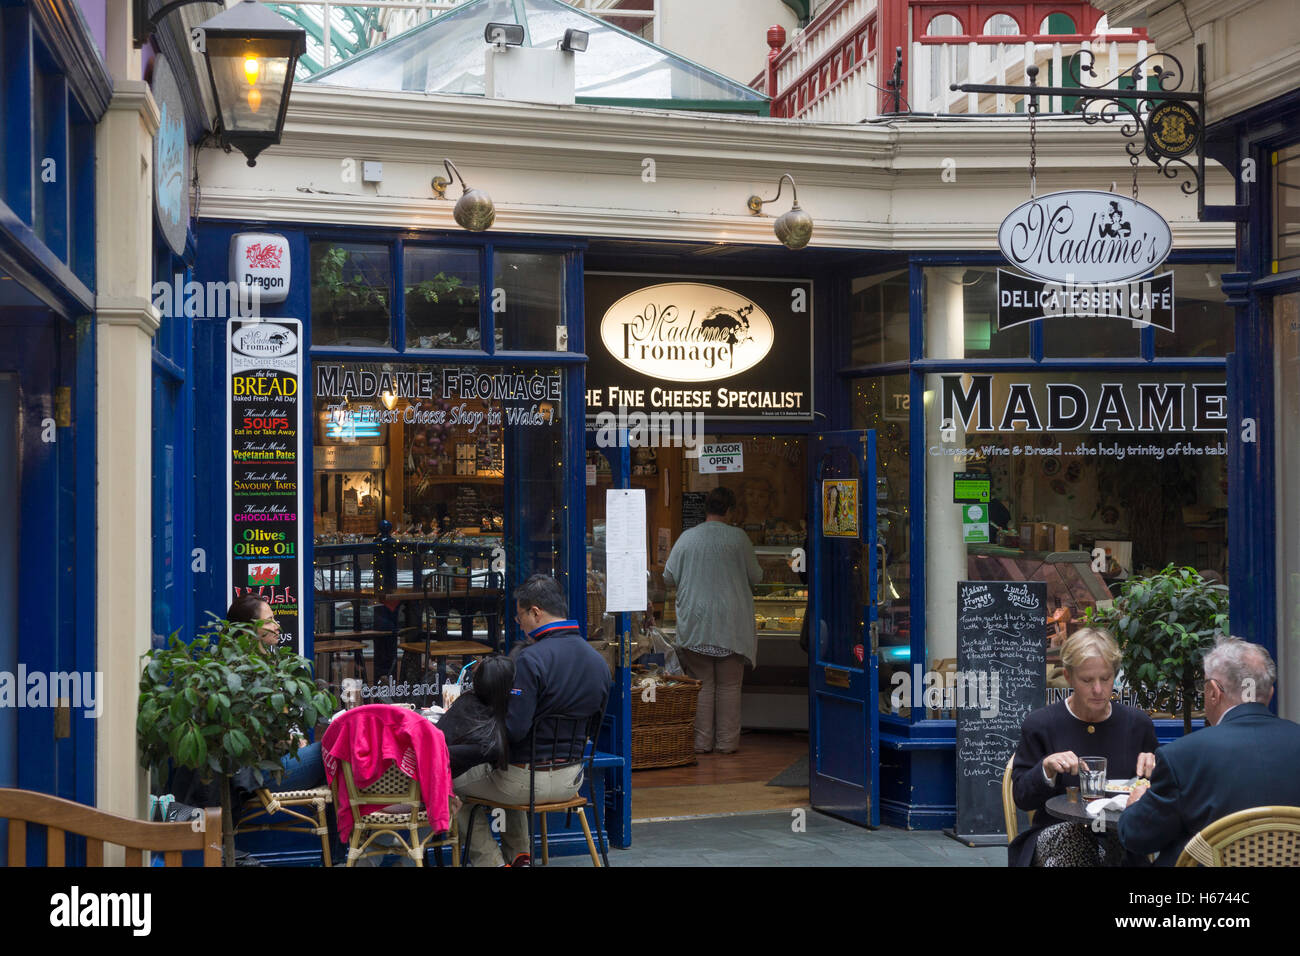 Madame Fromage, Castle Arcade, Cardiff - Stock Image